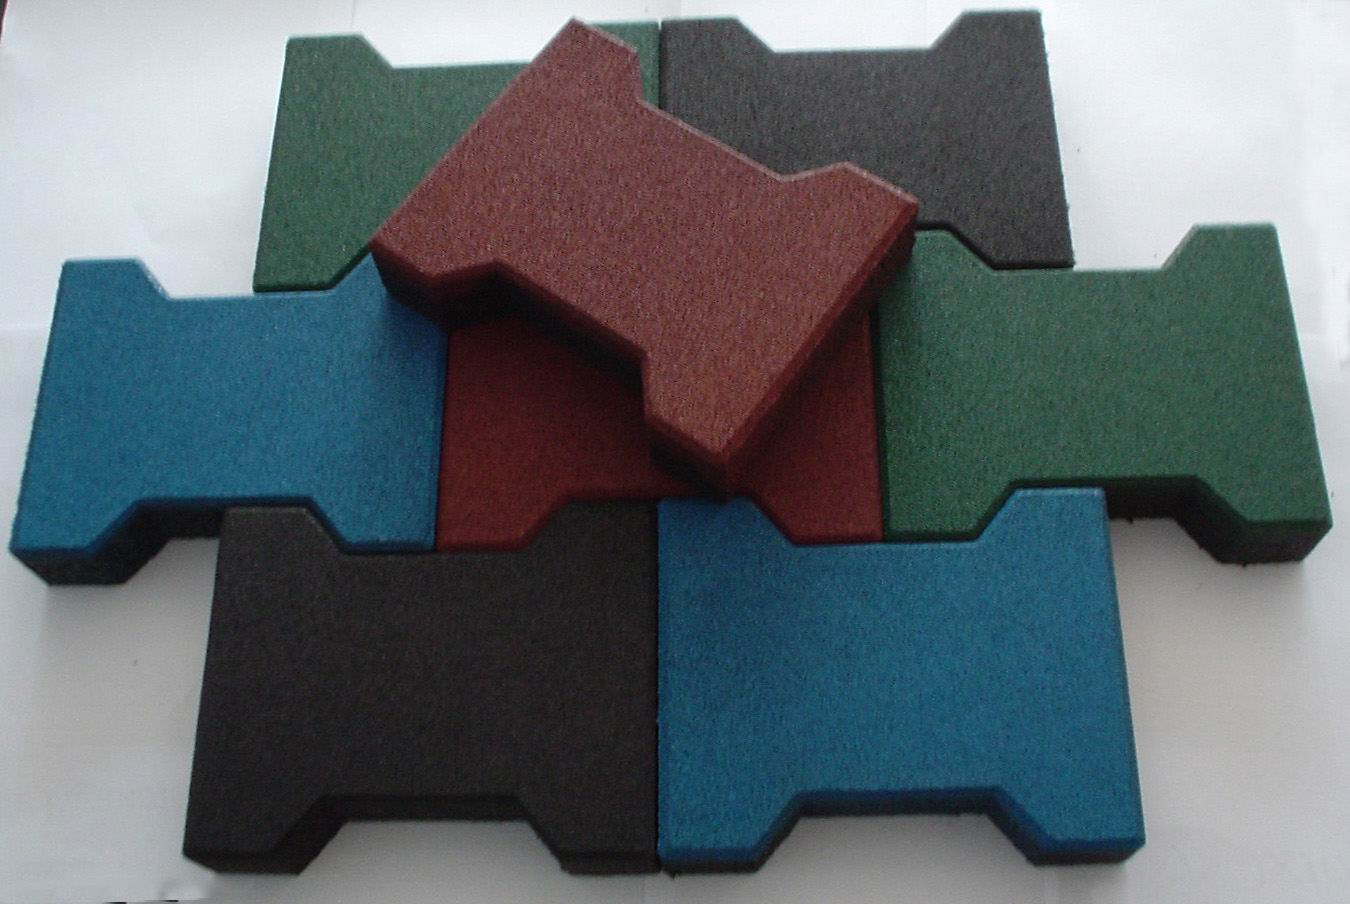 Rubber floor tiles interior exterior solutionsinterior exterior rubber floor tiles dailygadgetfo Image collections